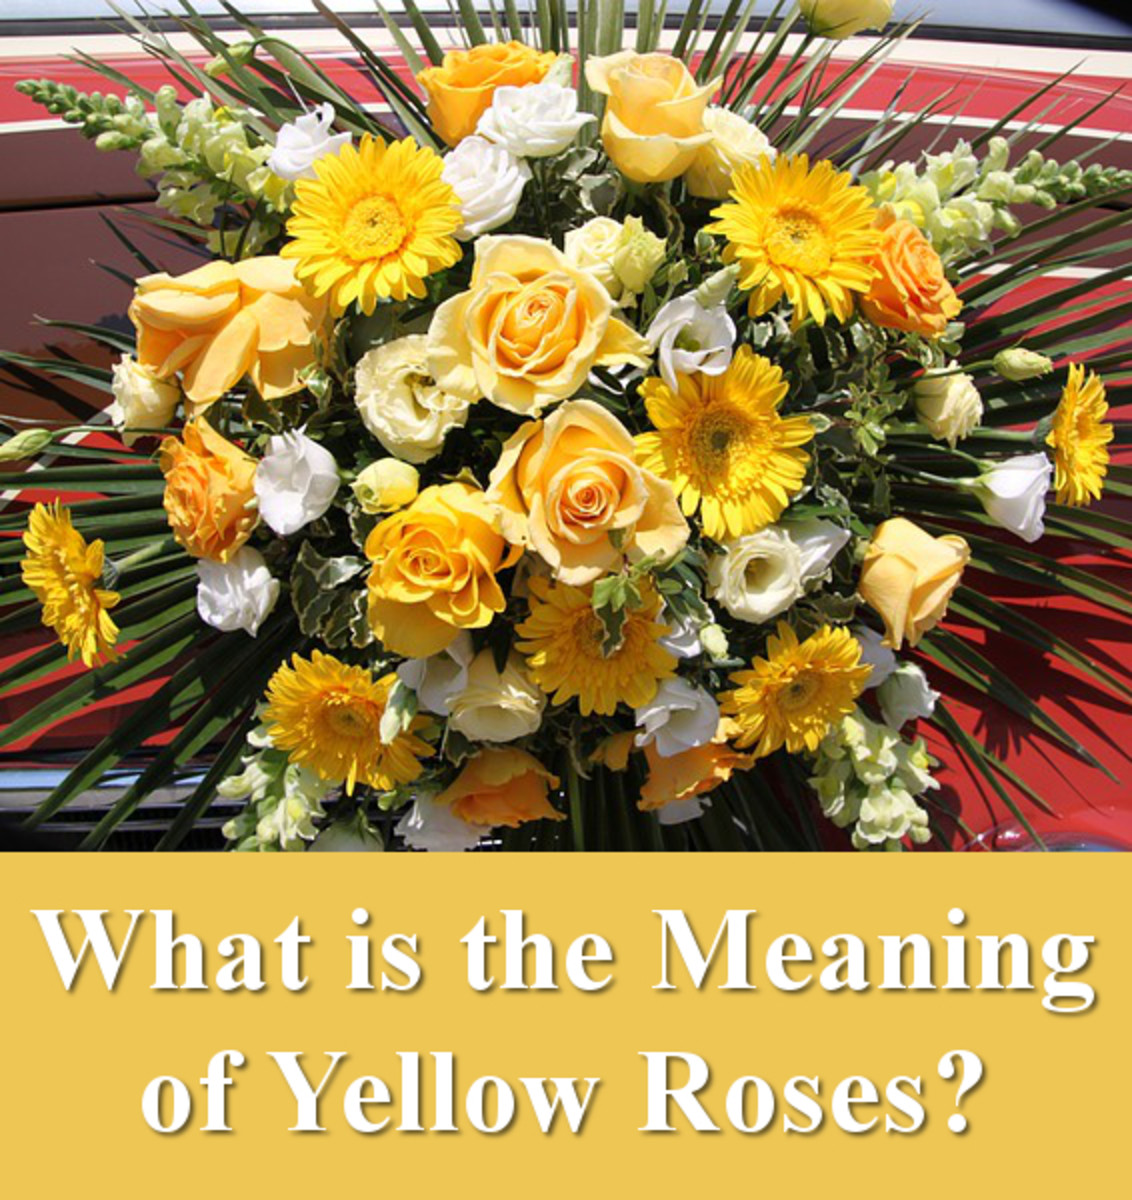 What is the meaning of yellow roses?